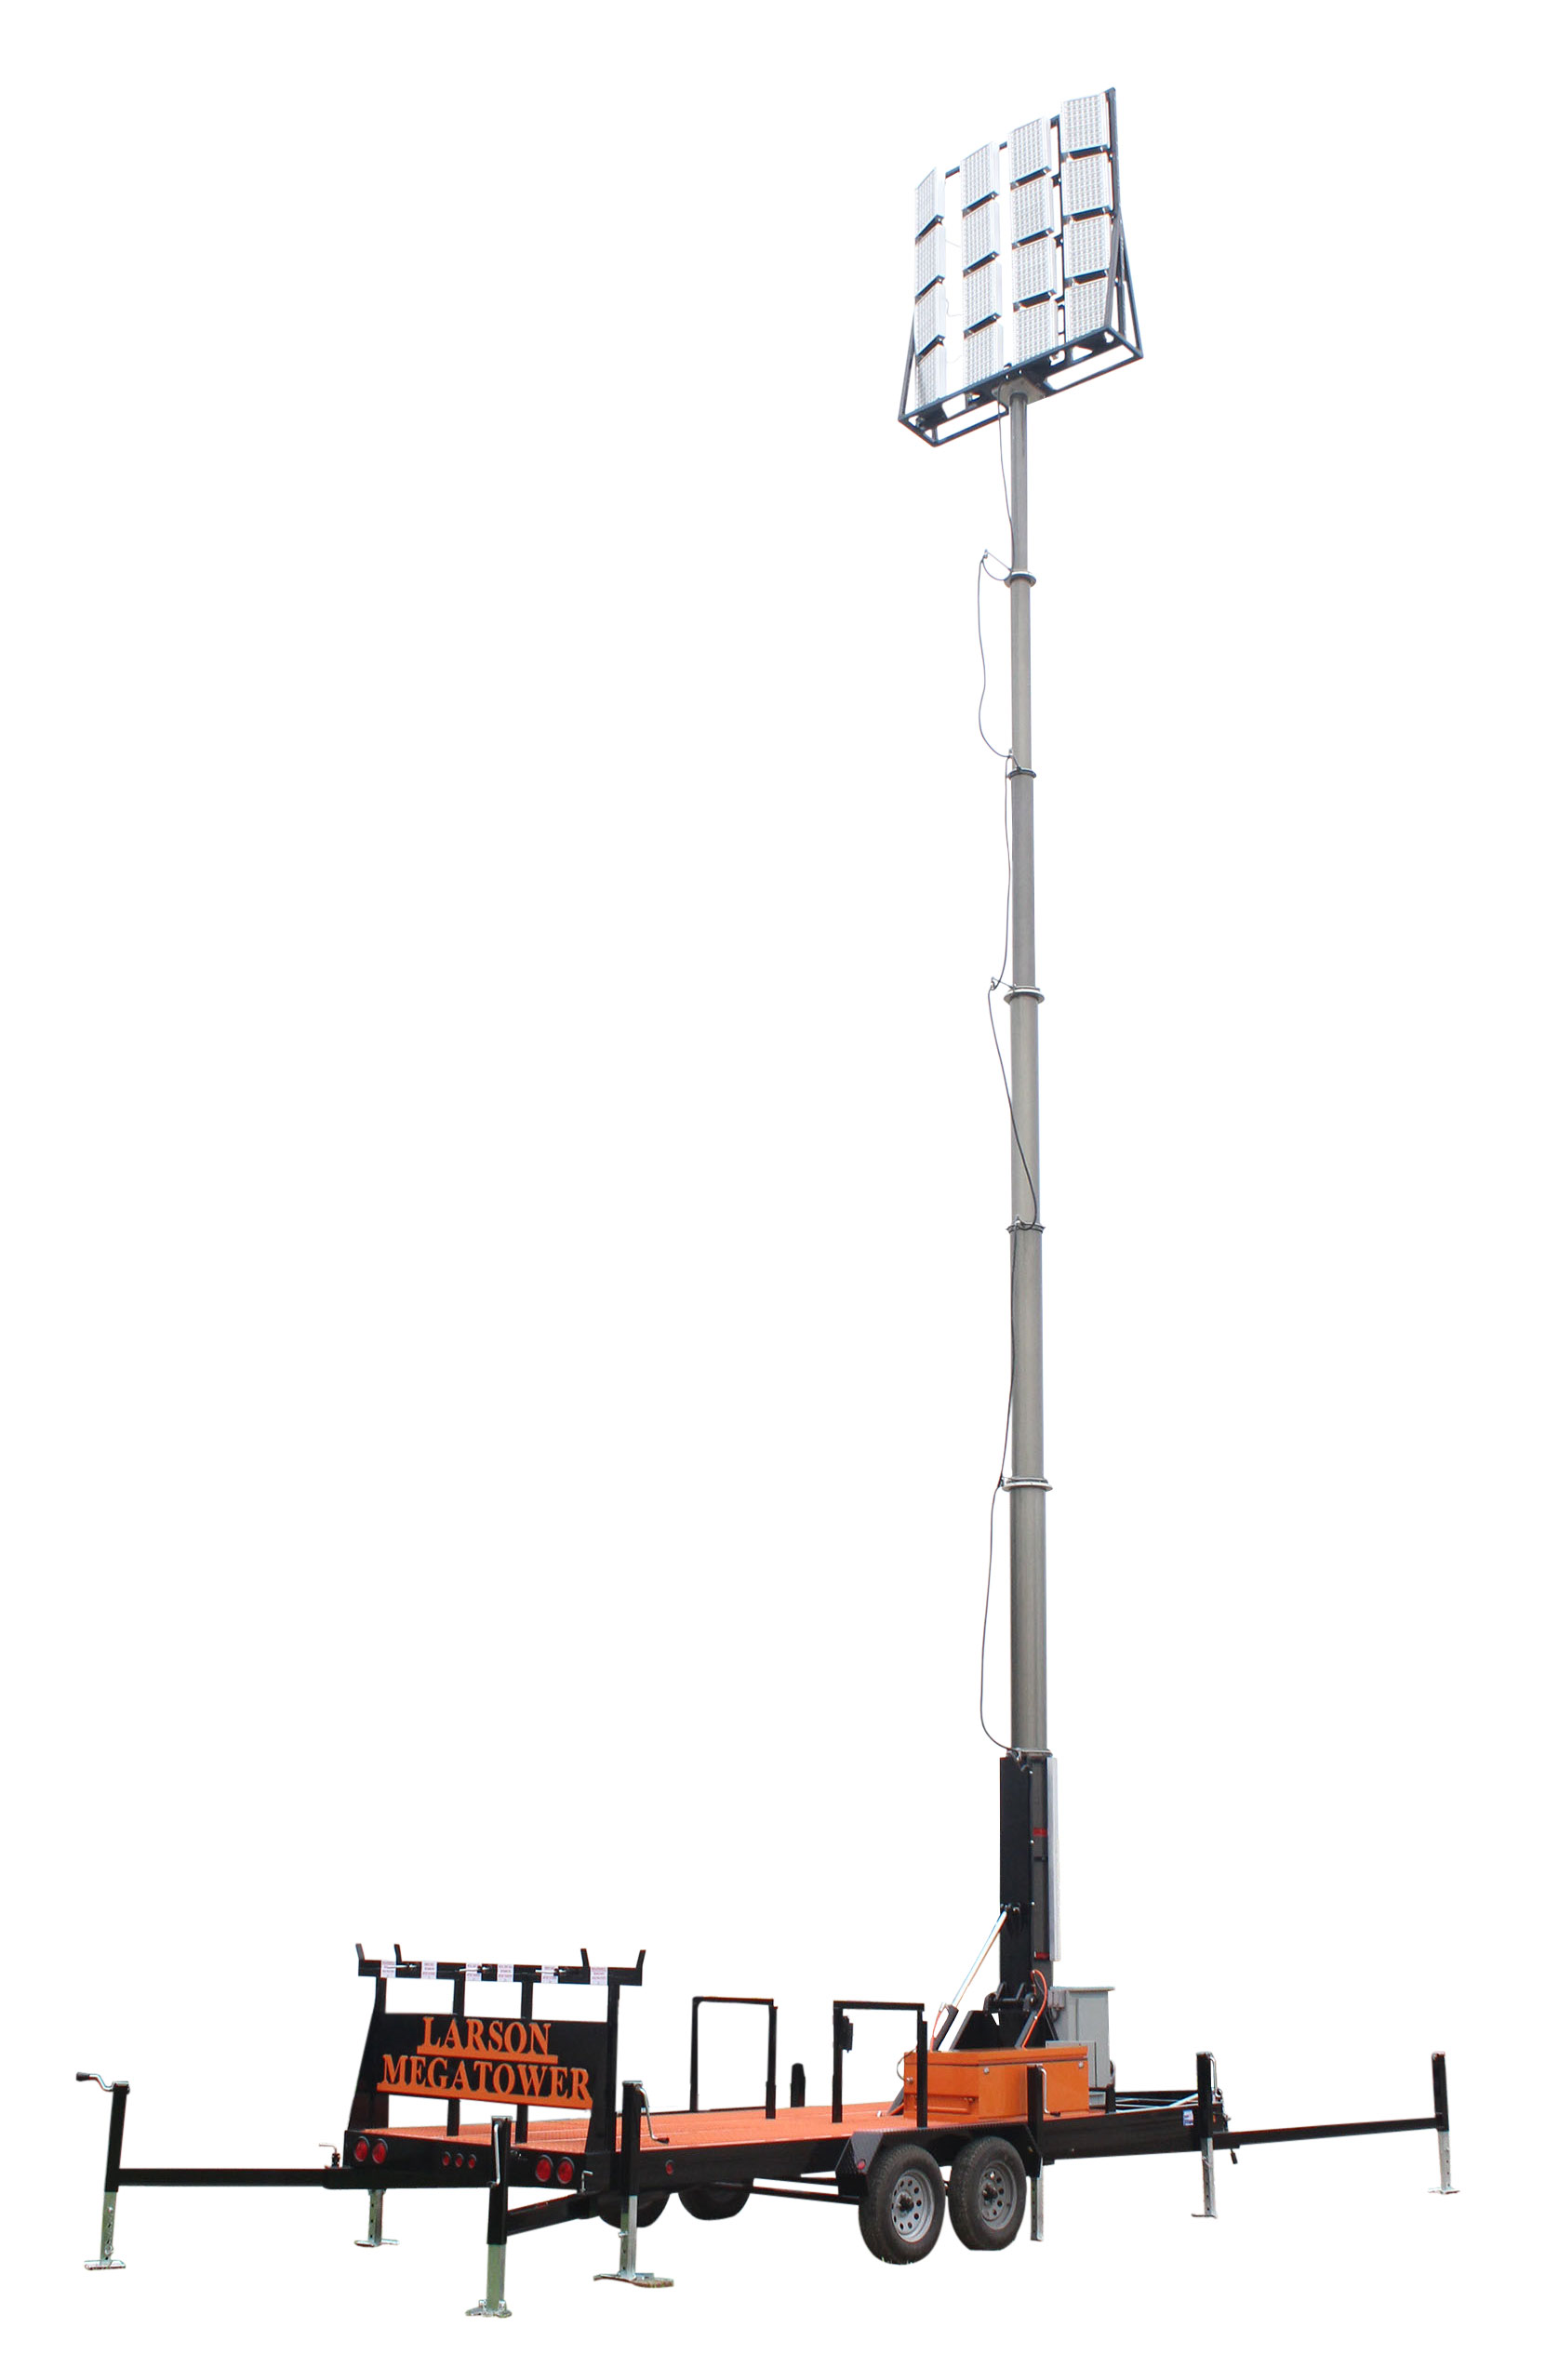 50 Megatower Pneumatic Light Mast Manufactured By Larson